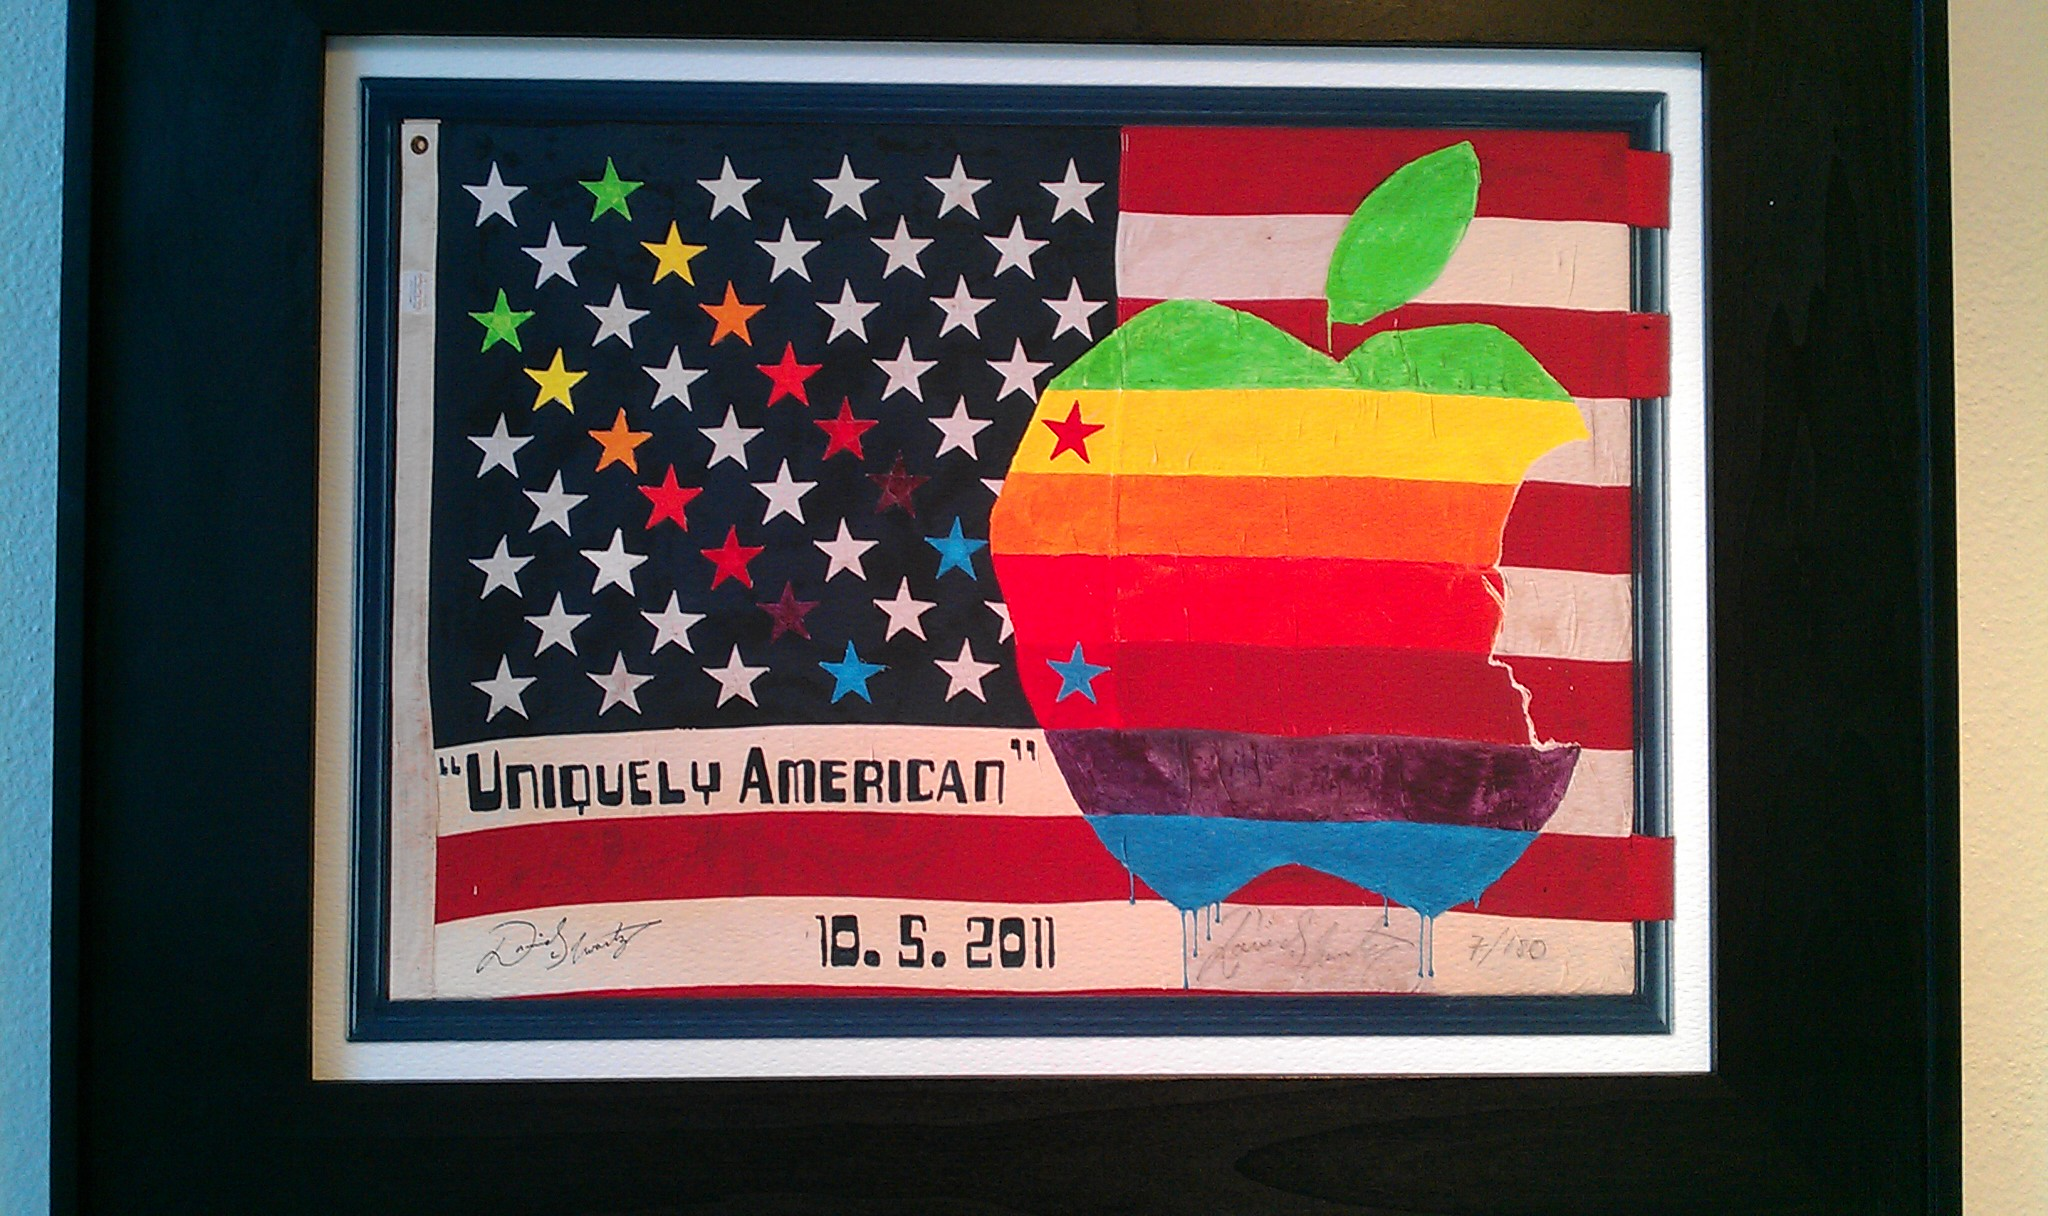 Uniquely American Framed